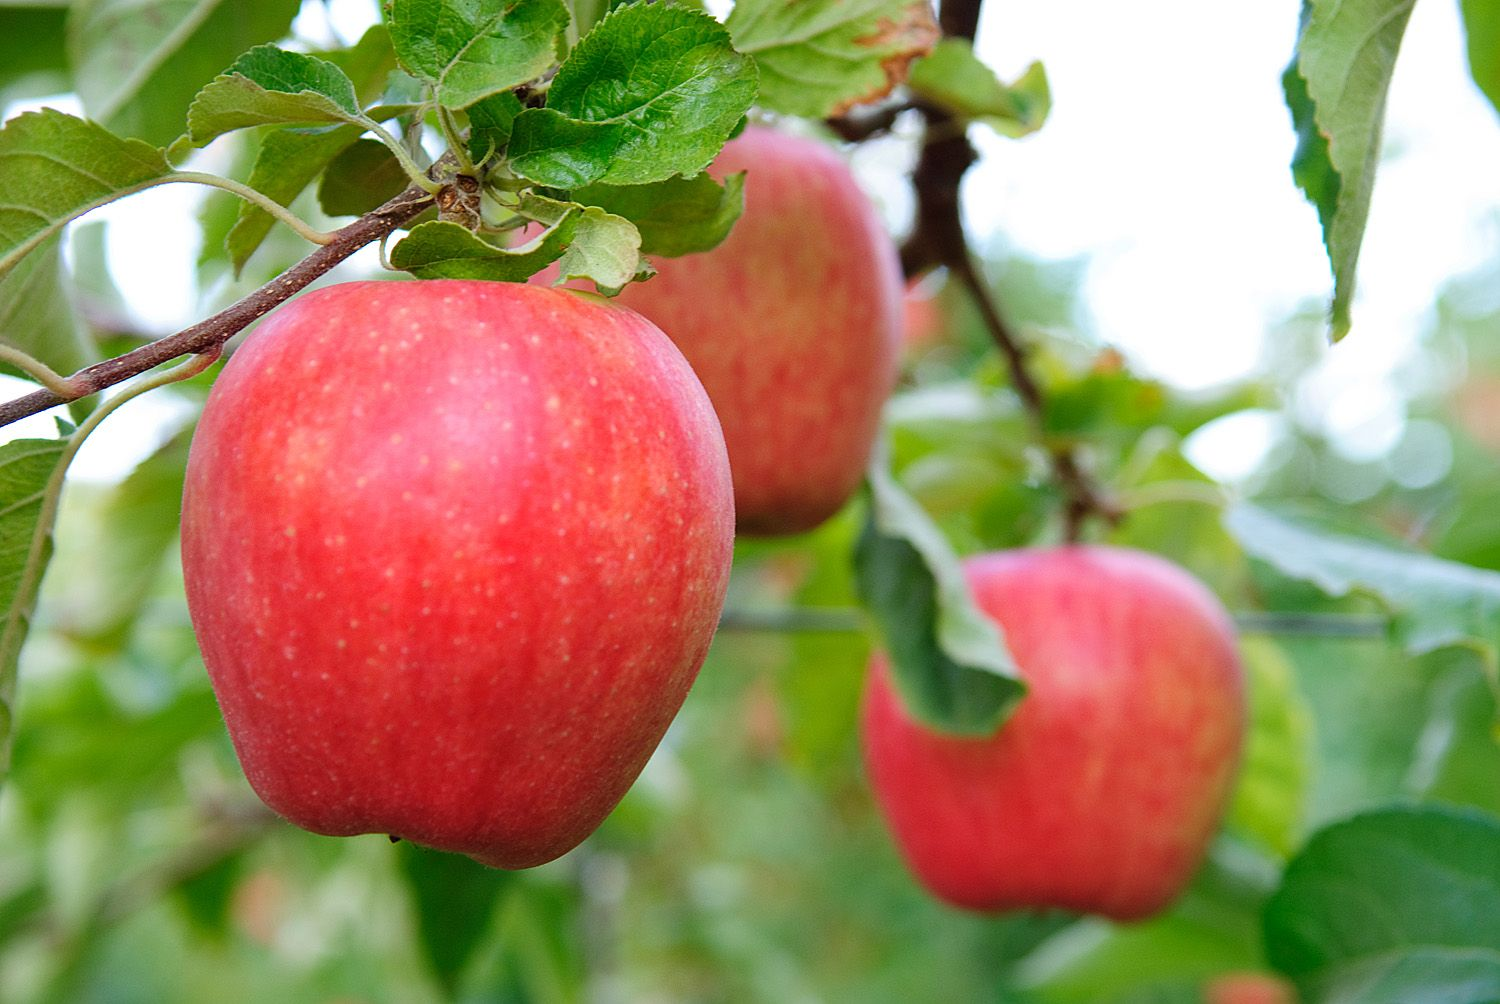 Pin by Stemilt Growers on Summer Recipes | Apple harvest